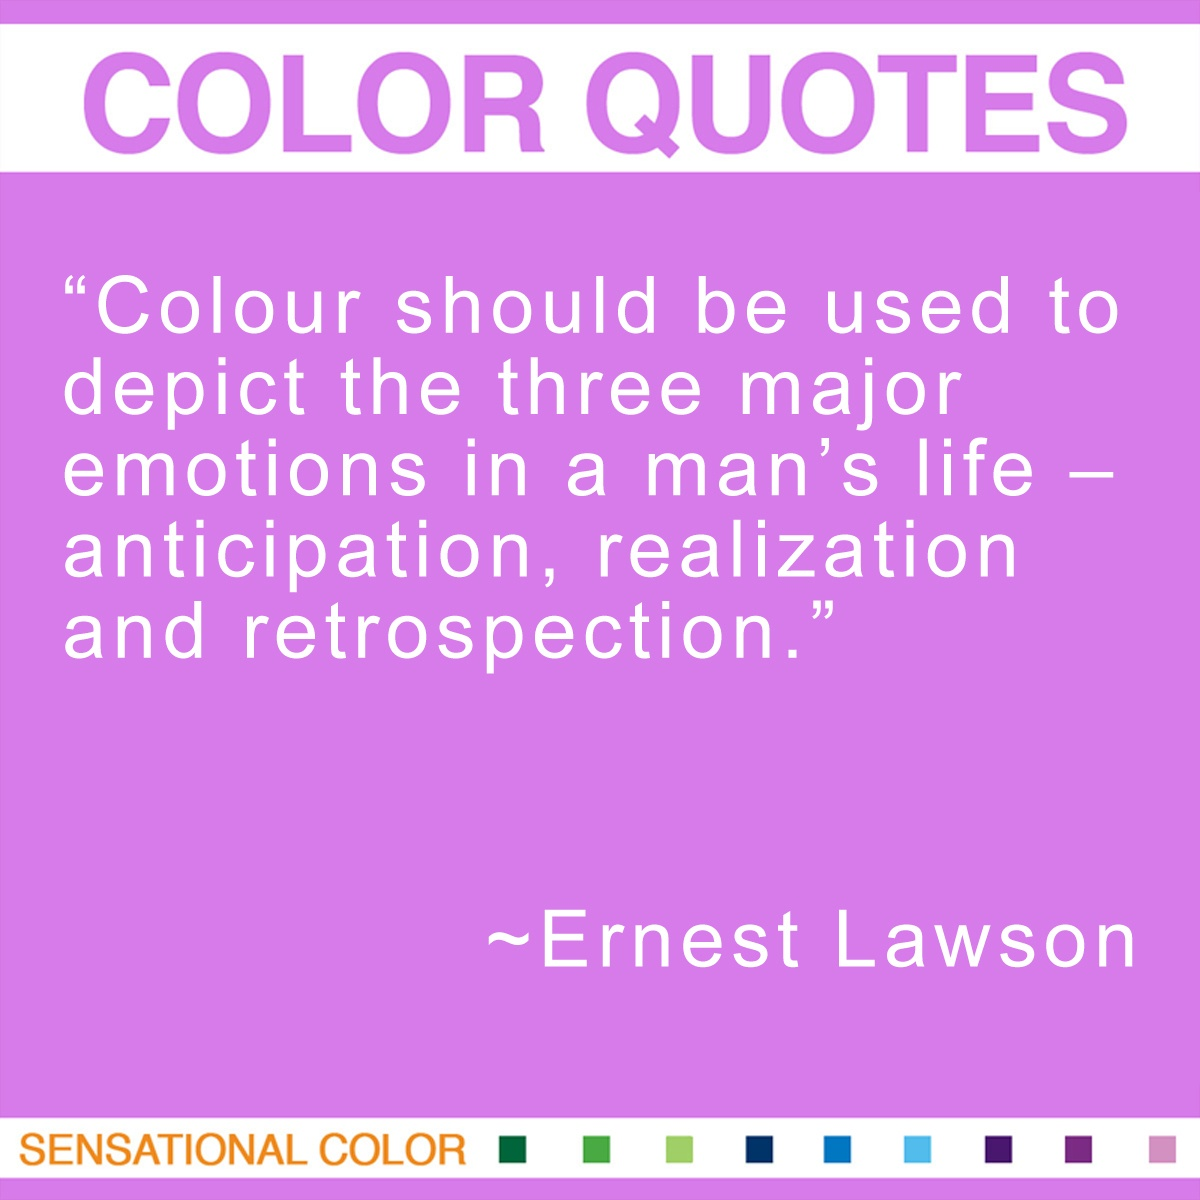 """""""Colour should be used to depict the three major emotions in a man's life – anticipation, realization and retrospection."""" - Ernest Lawson"""